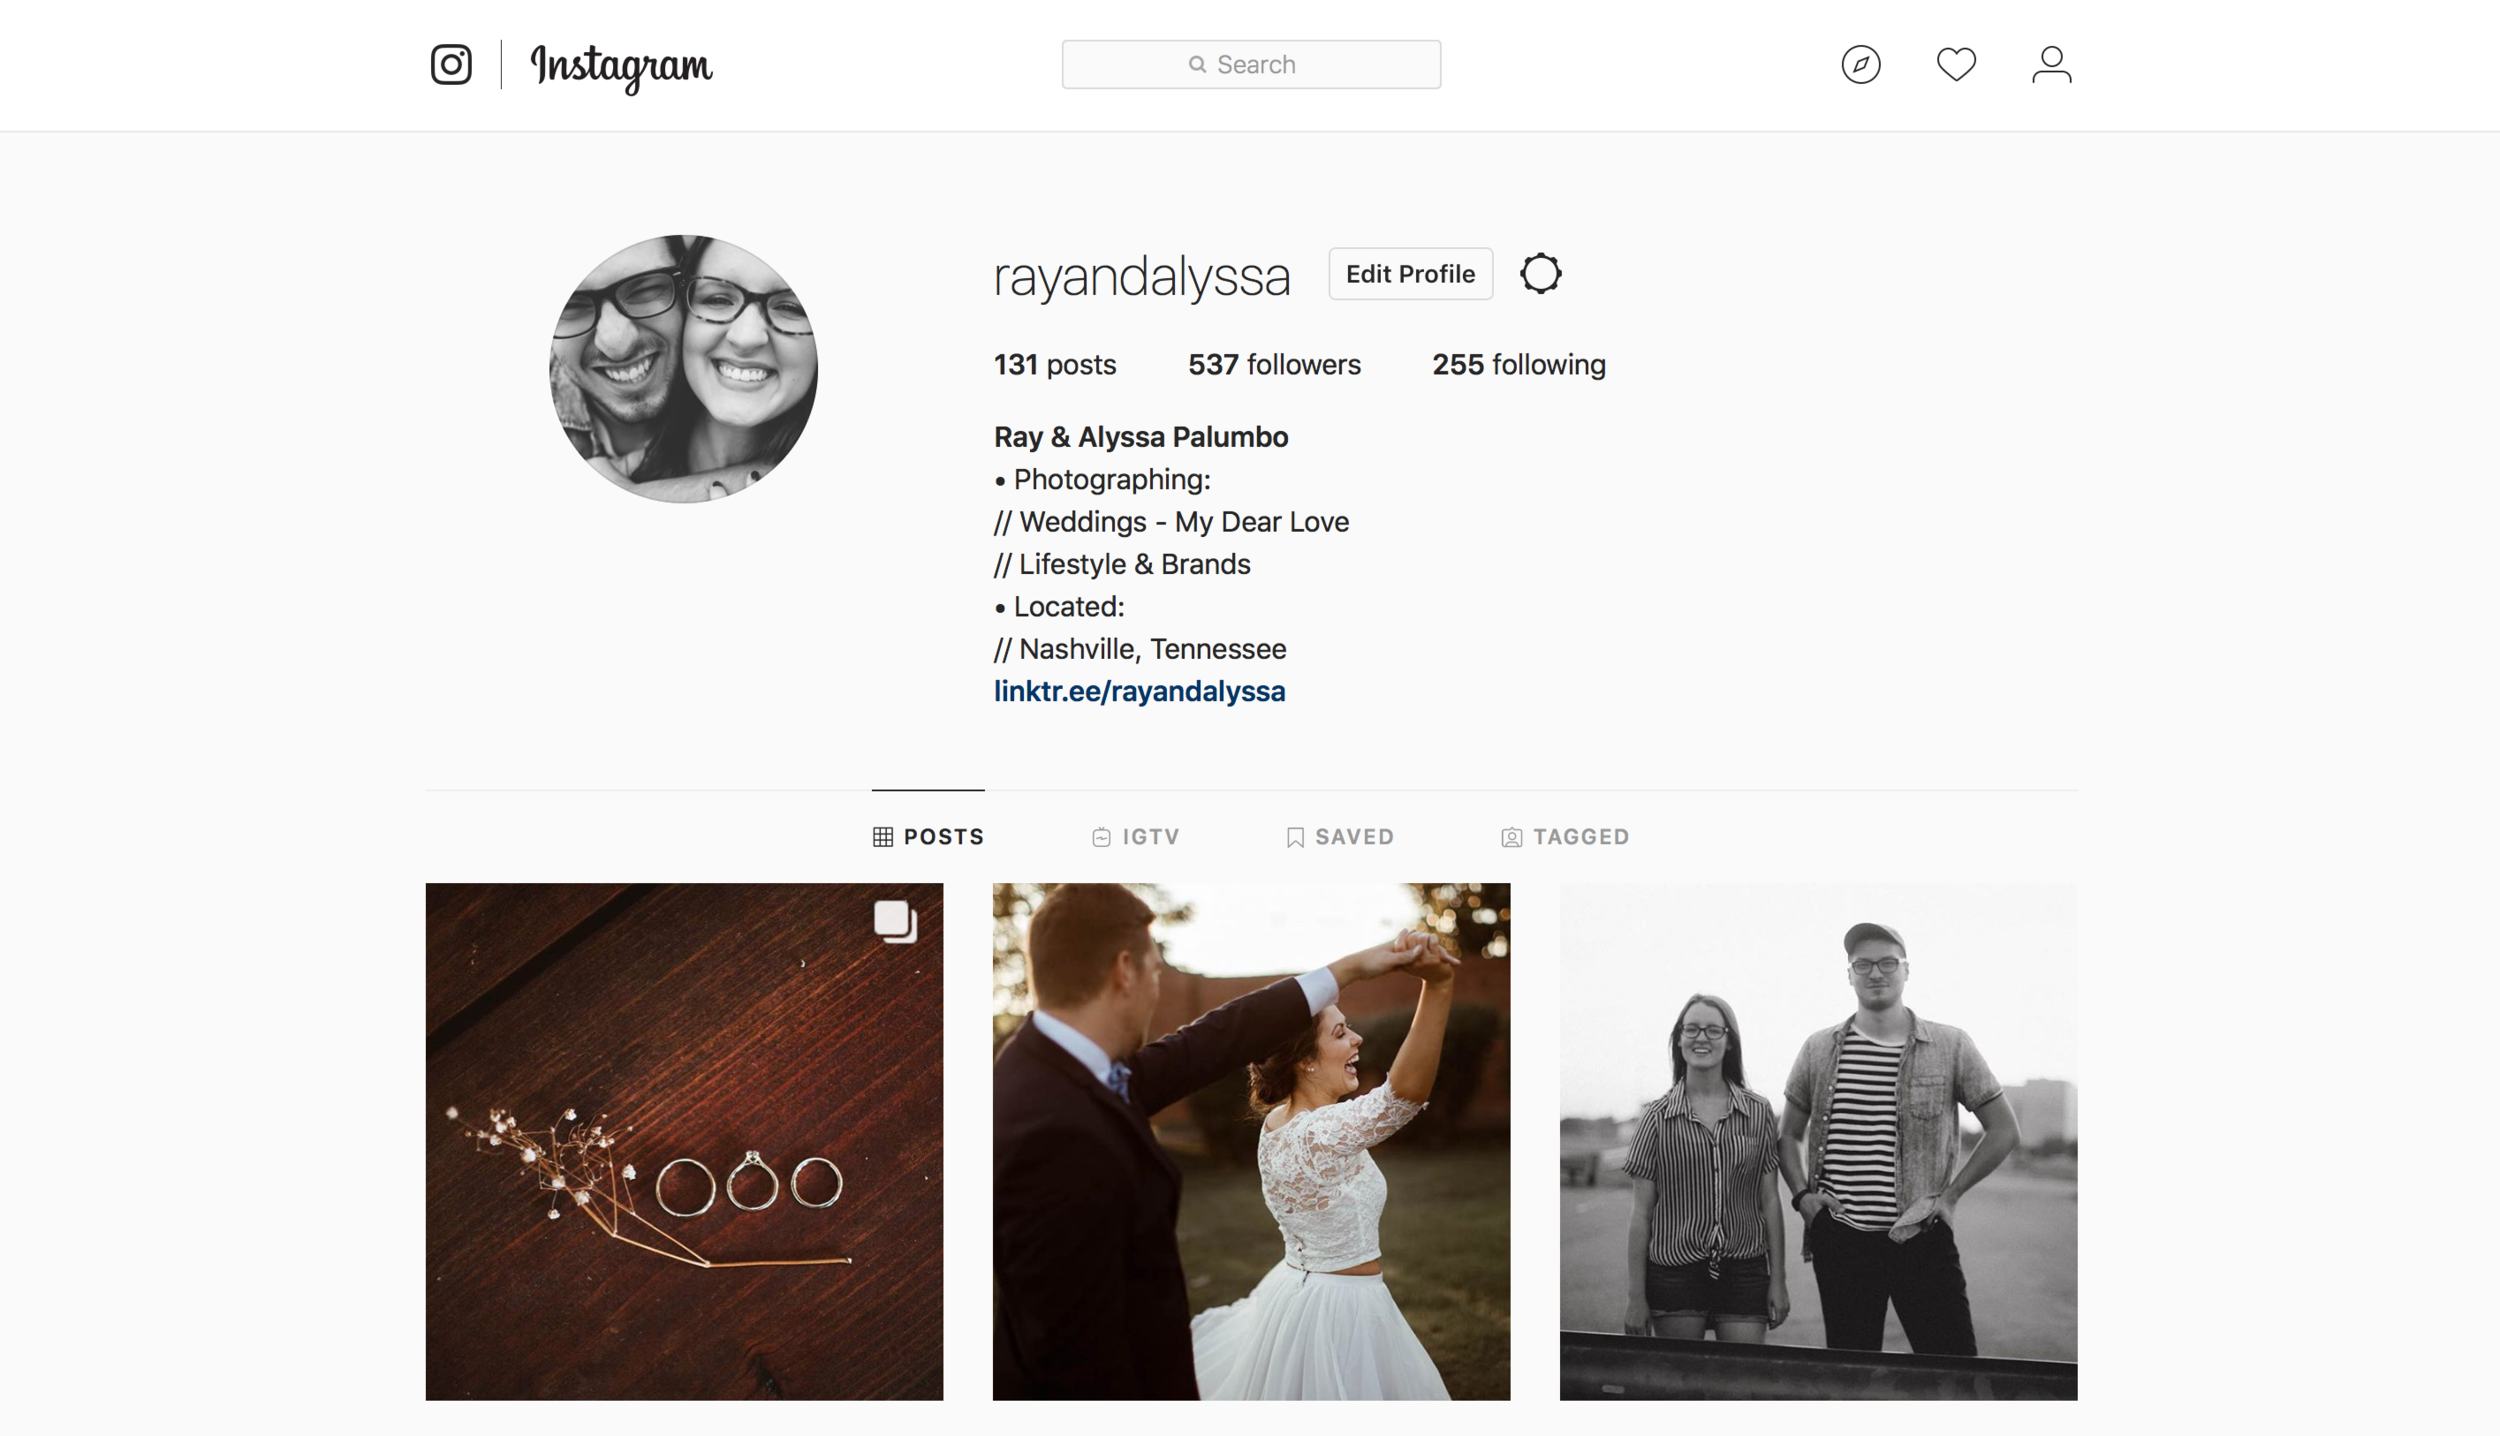 Instagram - We want to stay connected during your engagement & after your wedding! Sometimes we have a hard time finding people on social media. Make sure you find us, so we can follow you back! @rayandalyssa